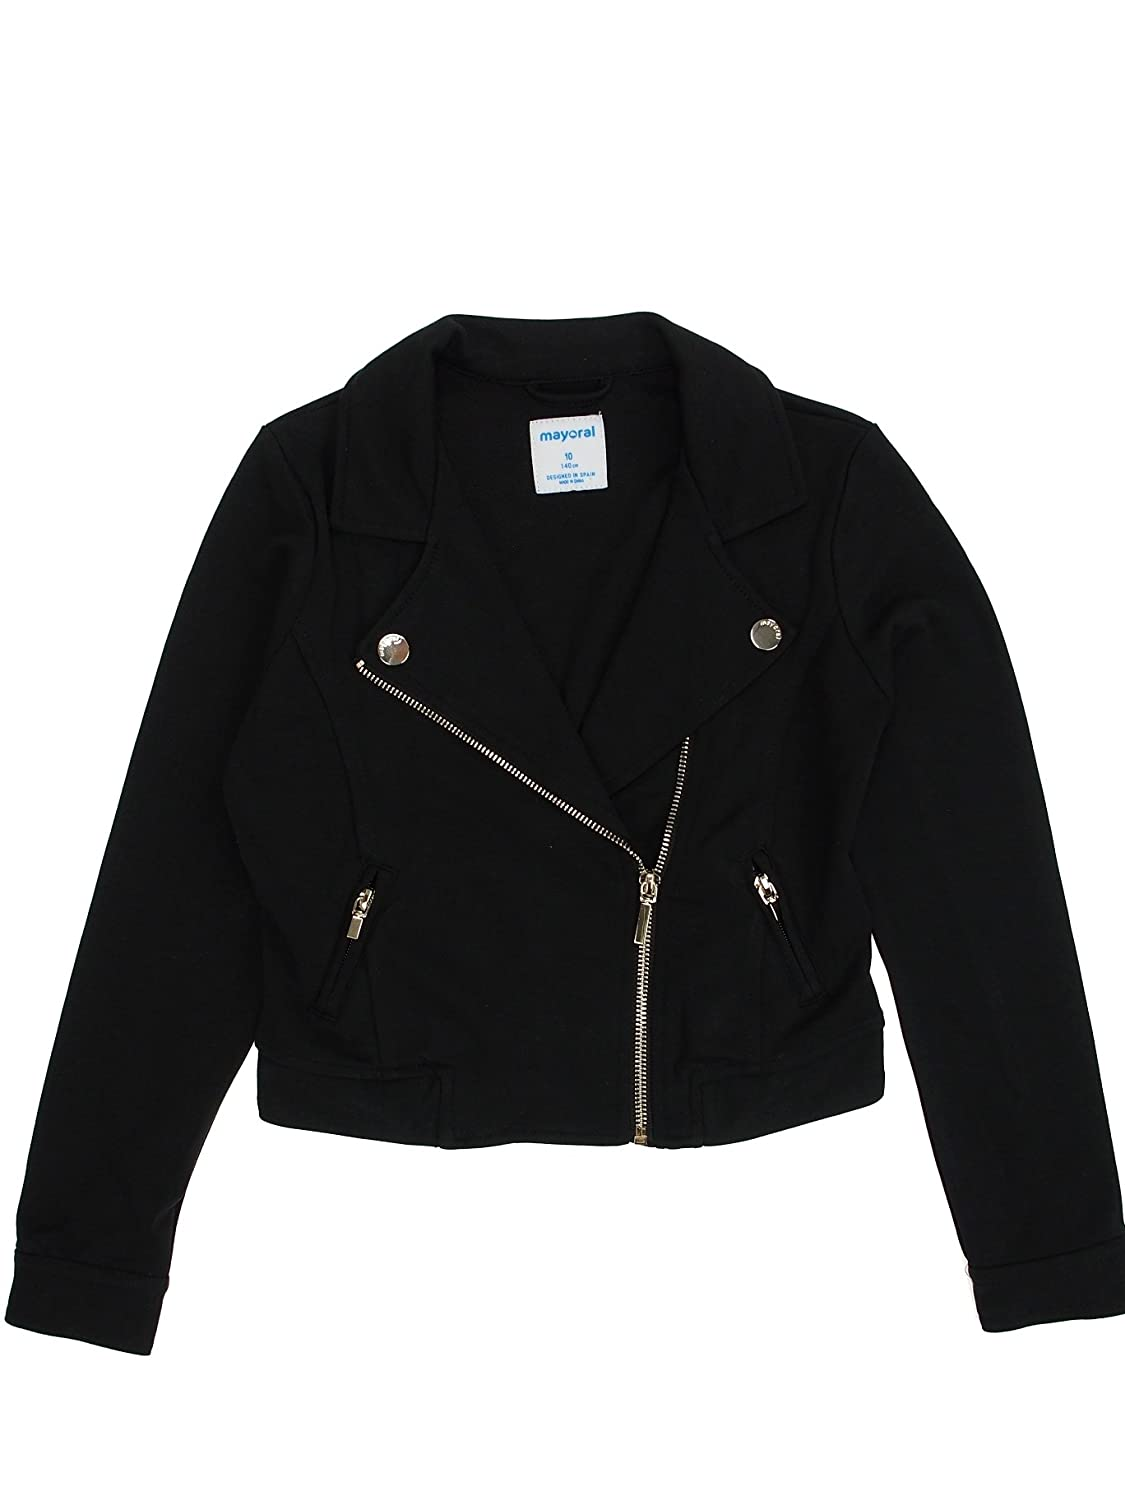 Black 6410 Mayoral Jacket for Girls